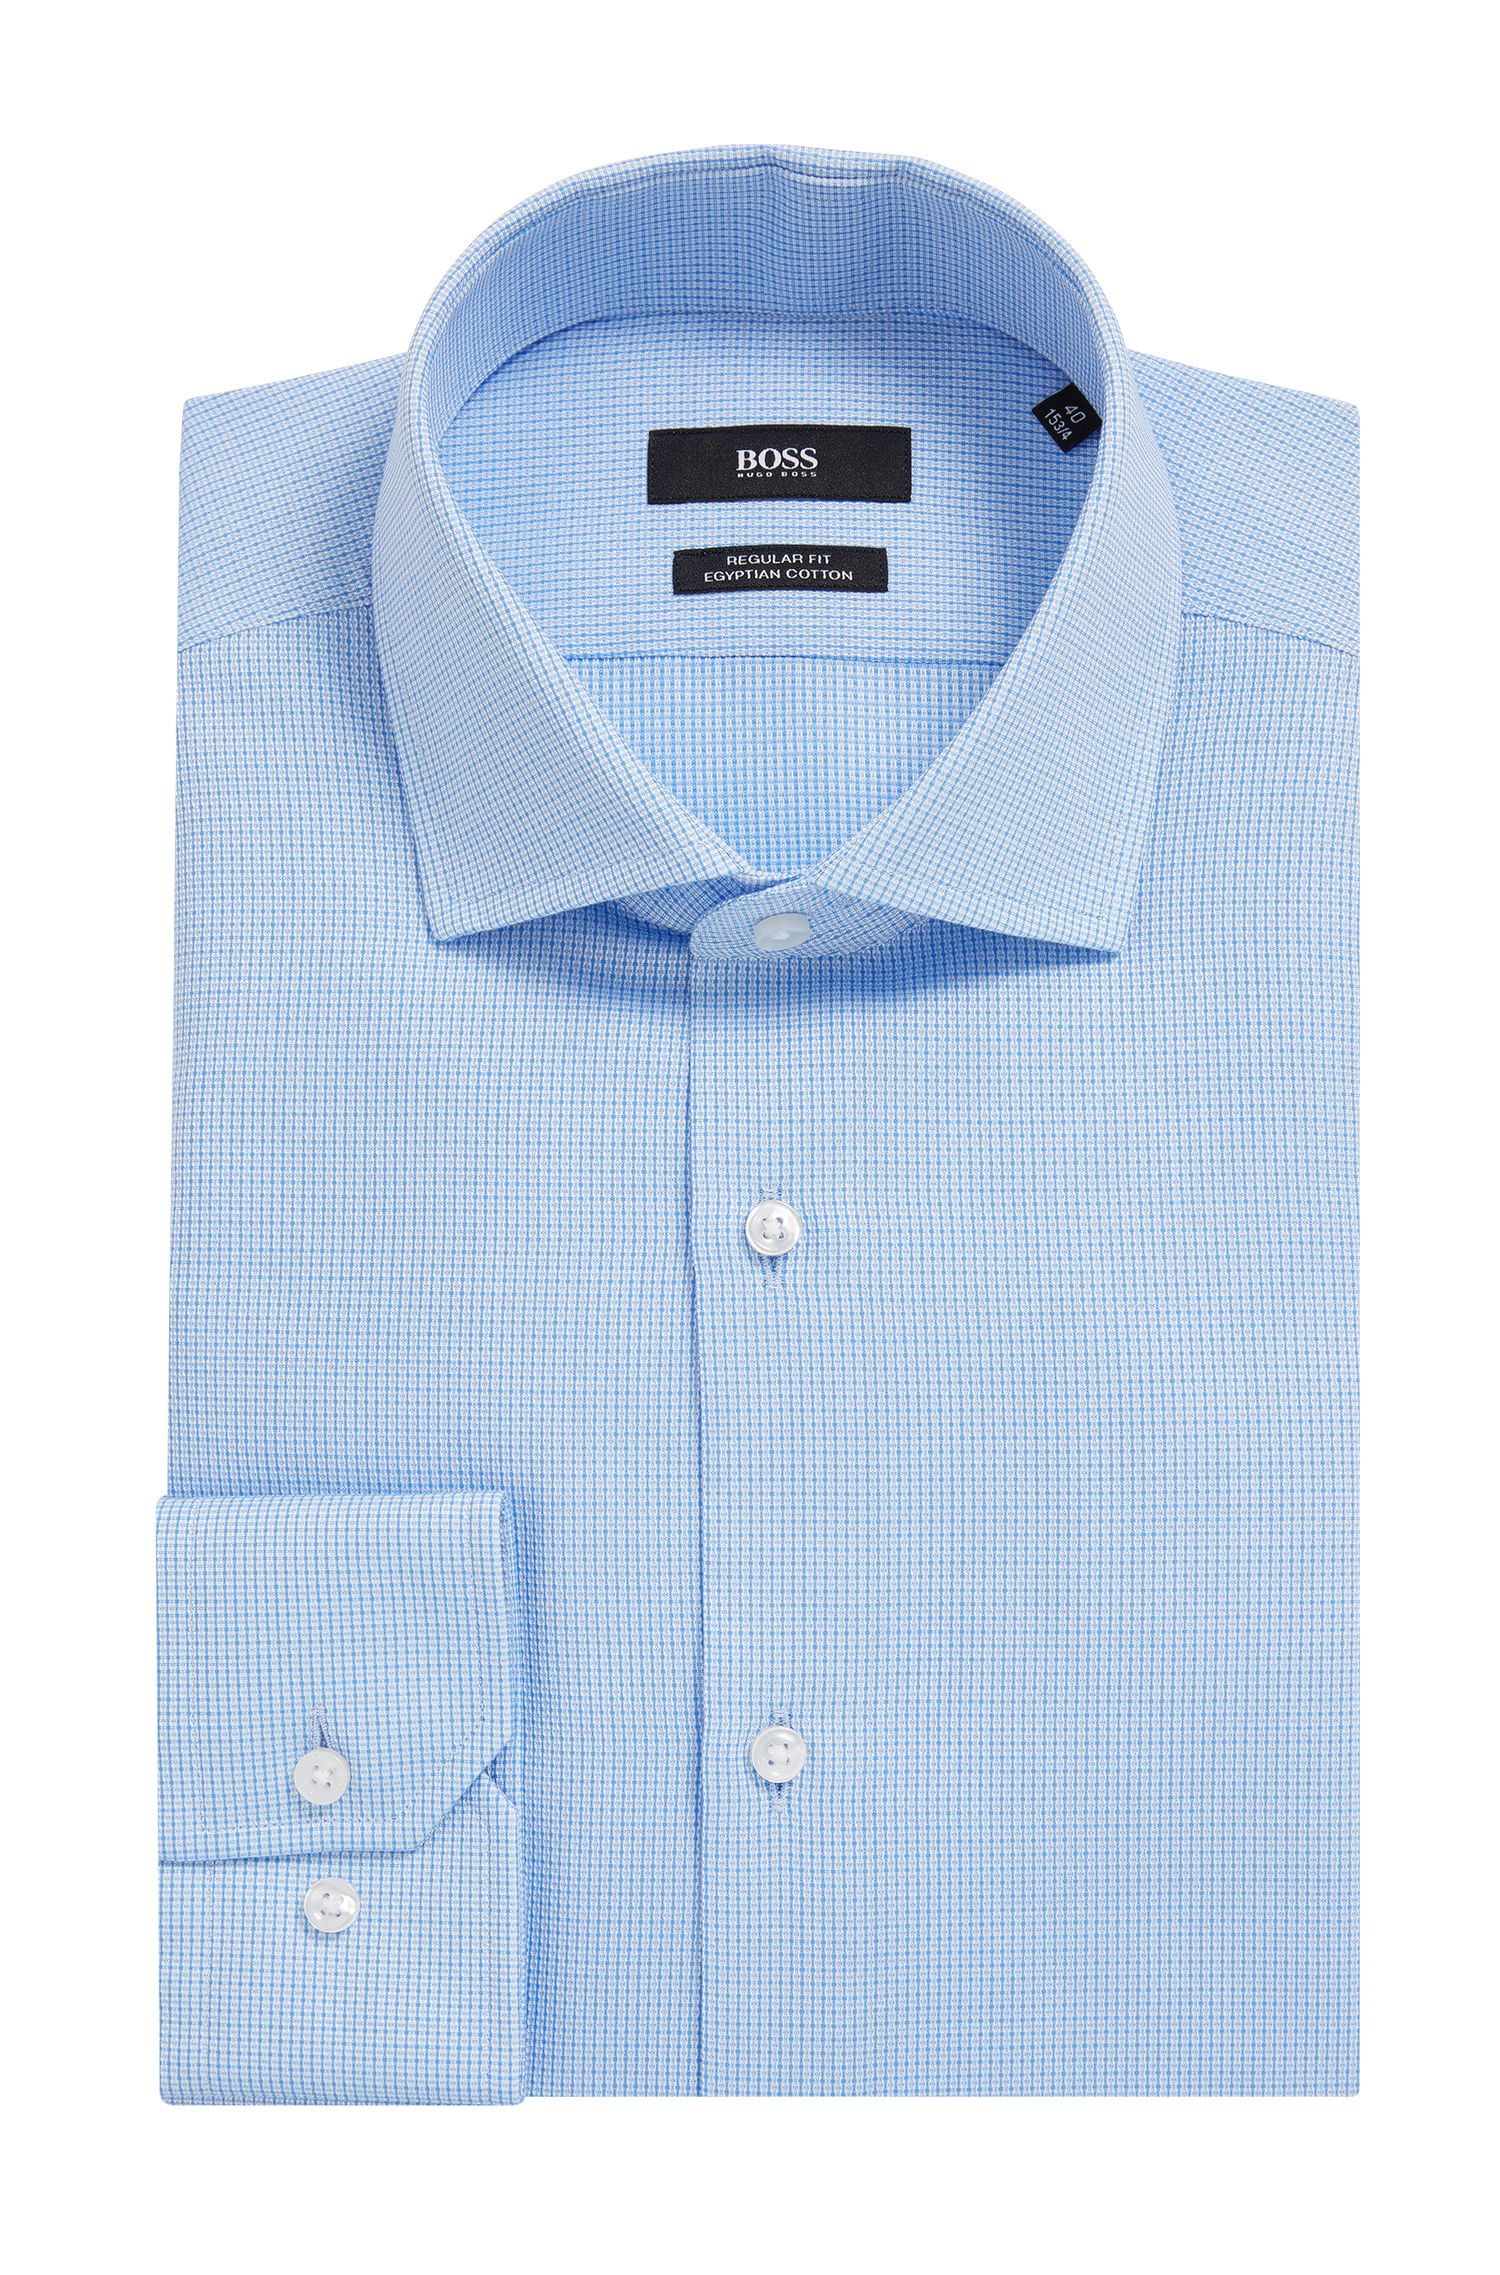 Checked Egyptian Cotton Dress Shirt, Regular Fit | Gordon